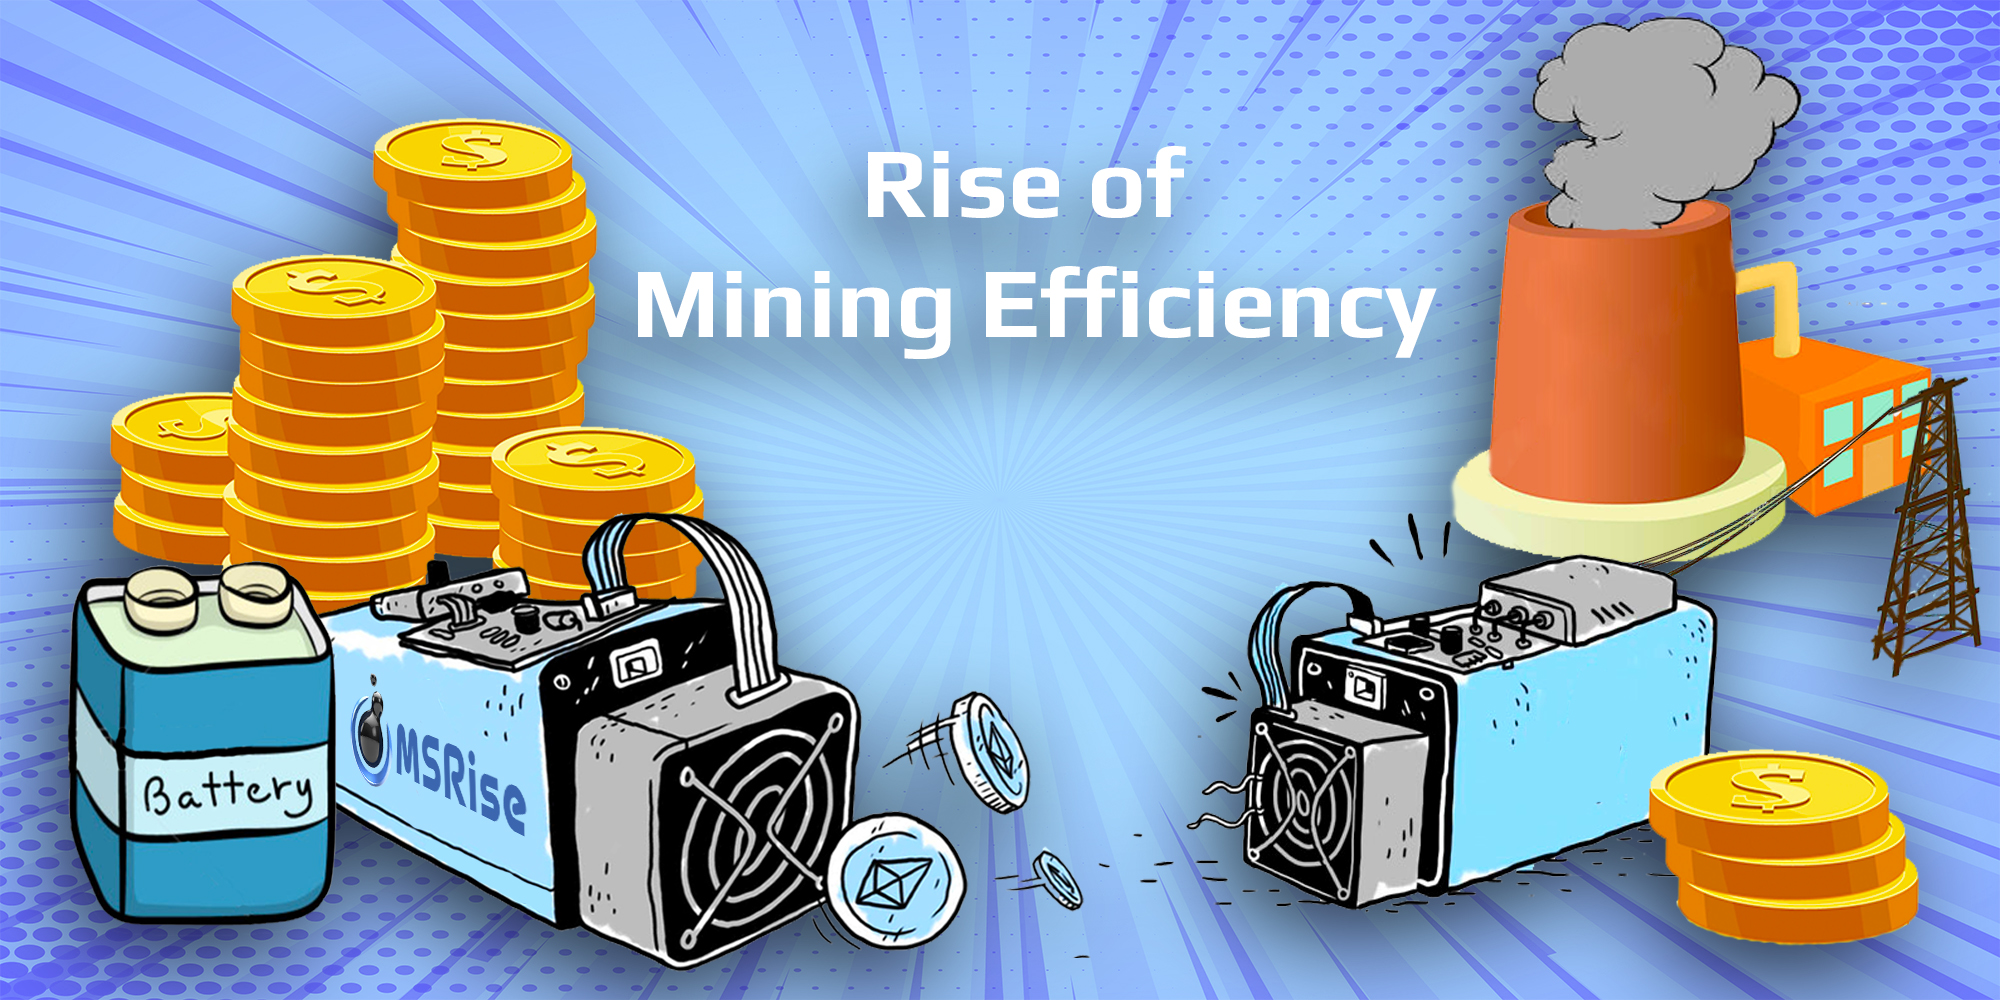 Rise of Mining Efficiency